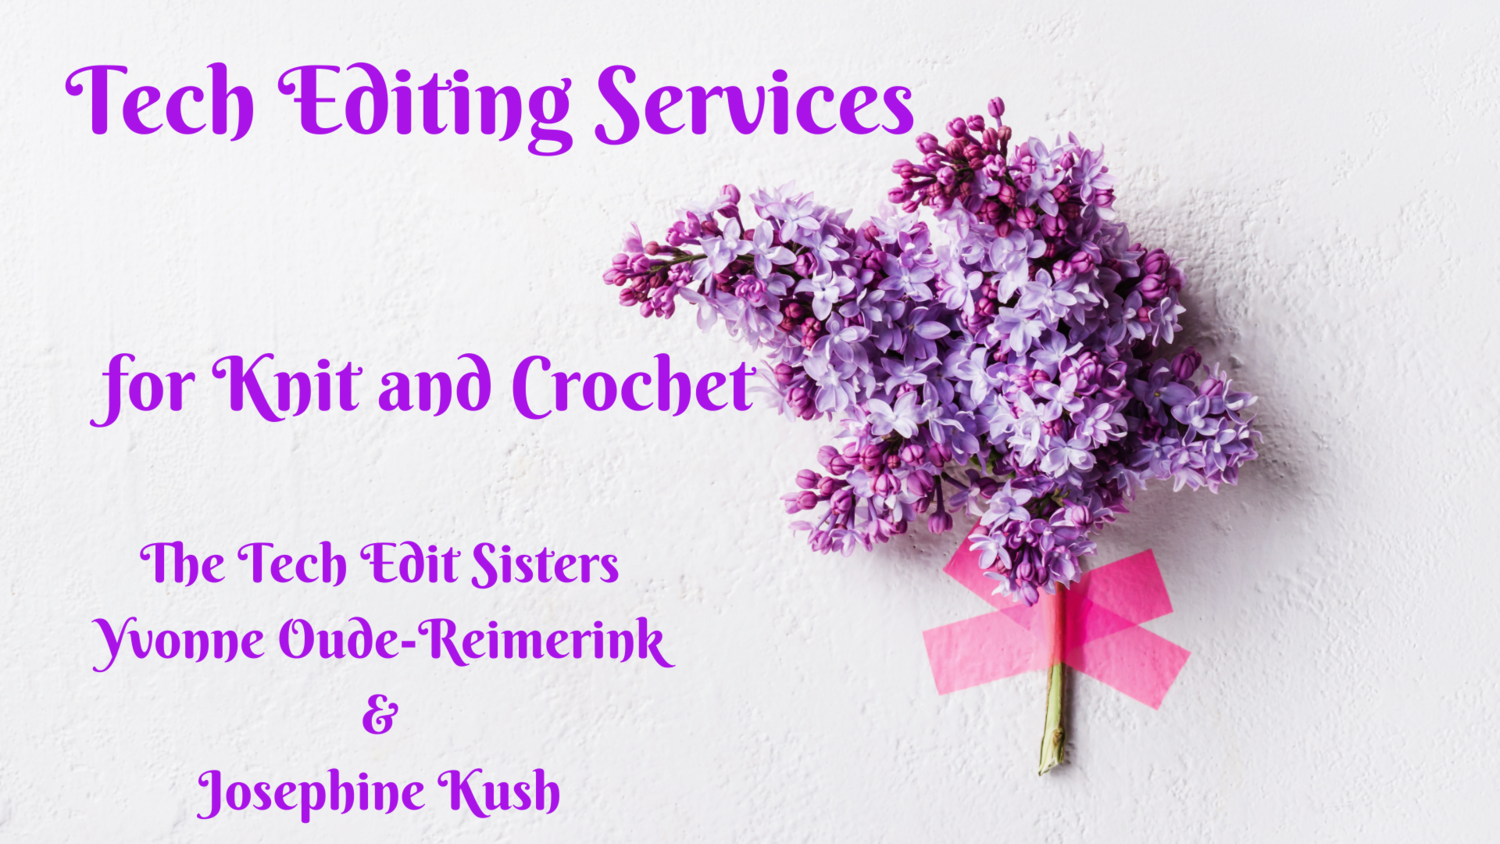 TECHNICAL EDITING SERVICES for KNIT and CROCHET DESIGNERS Services provided by Yvonne Oude Reimerink & Josephine Kush